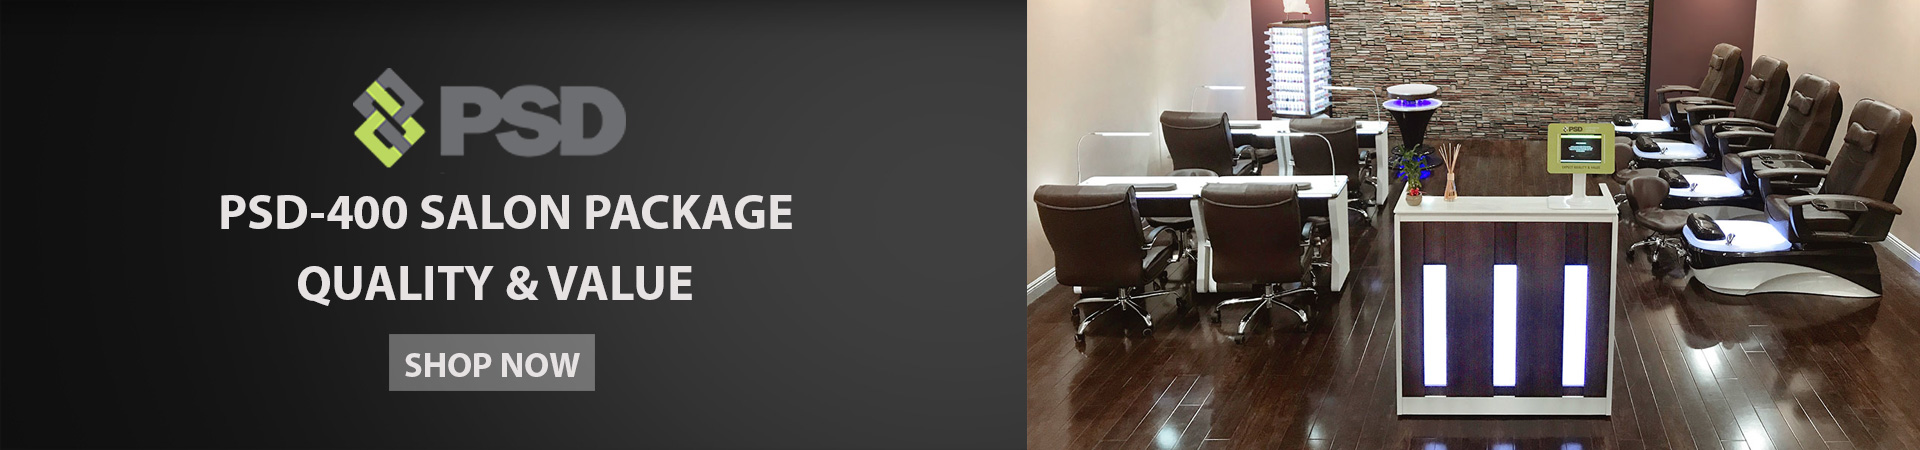 PSD-400 pedicure chair package banner